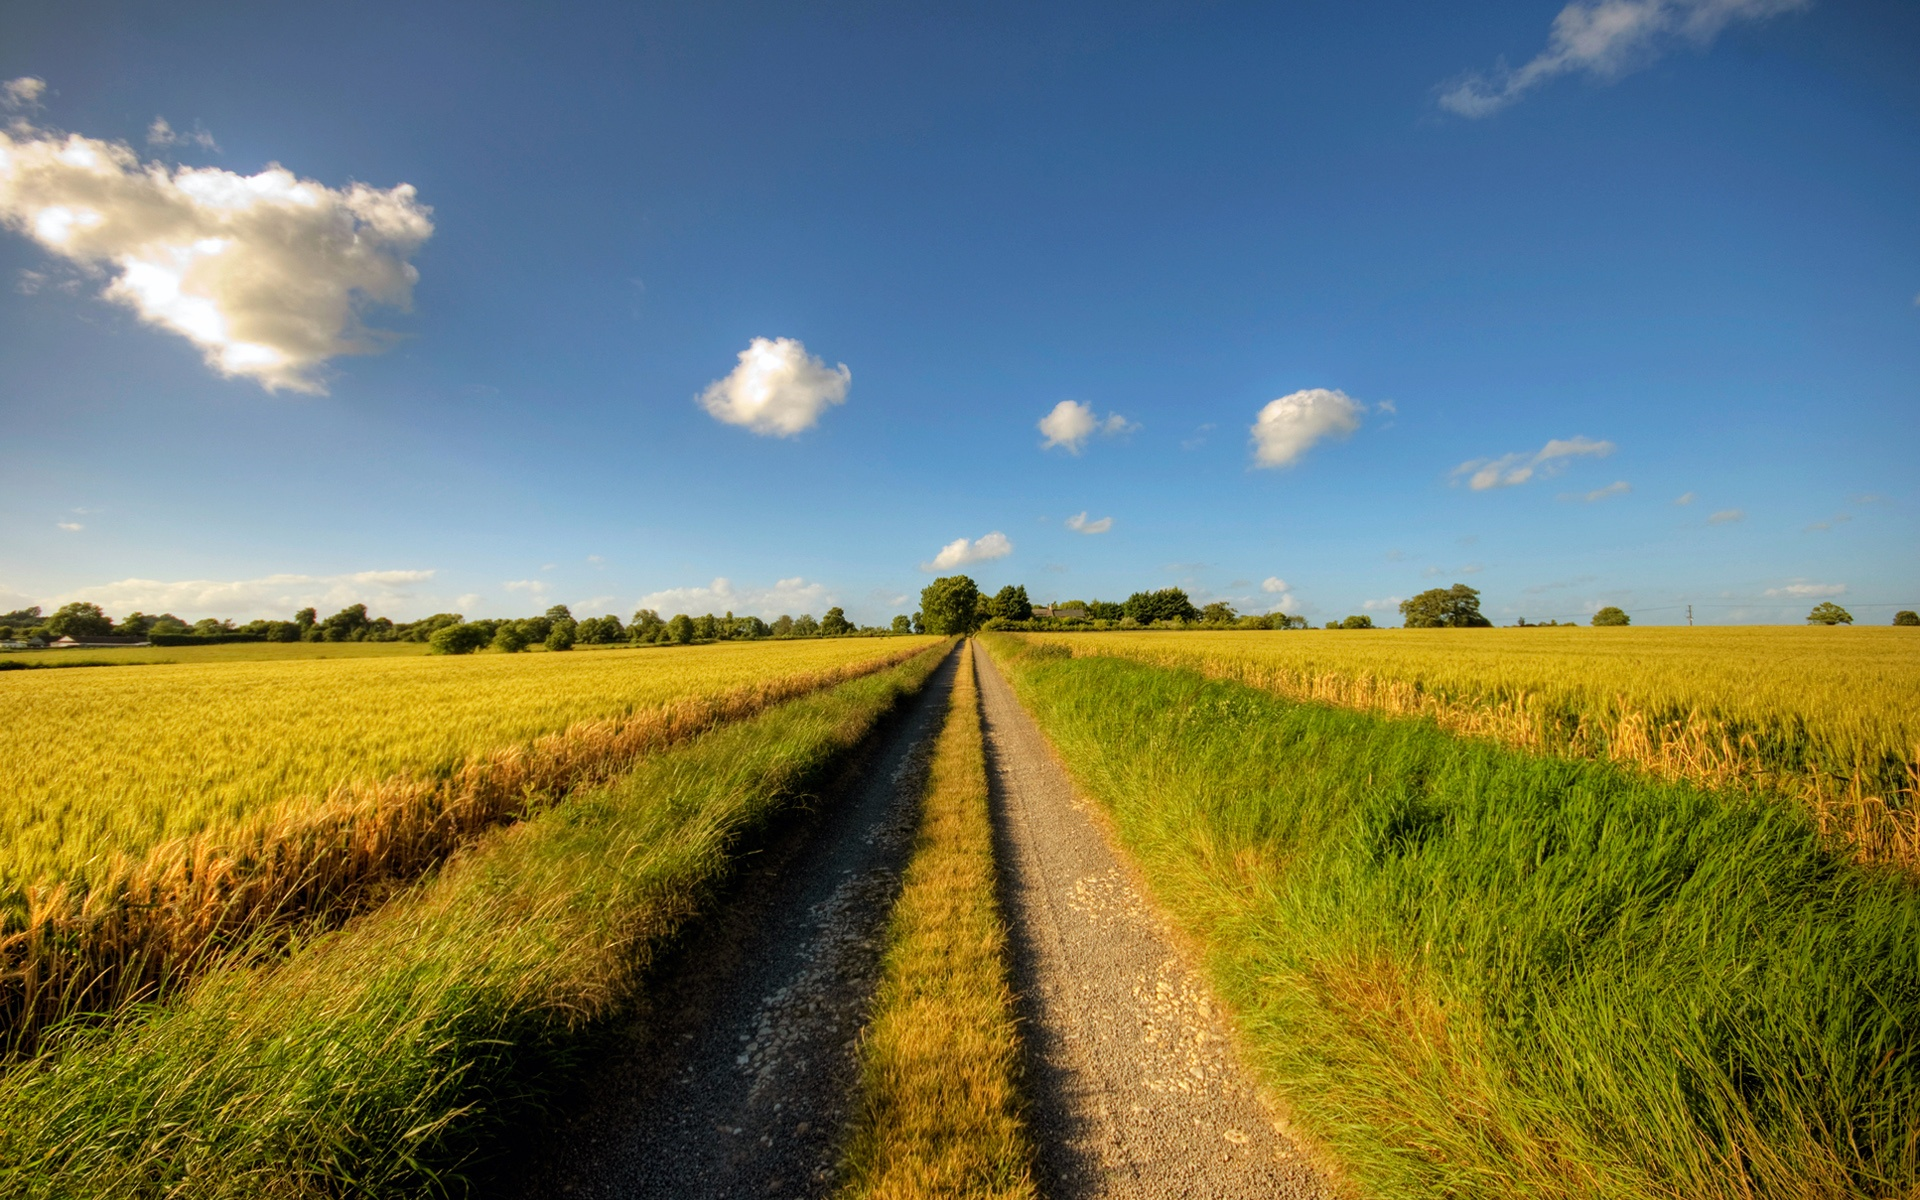 Footpath, road, sunny day, fields, clouds, summer Wallpapers | HD